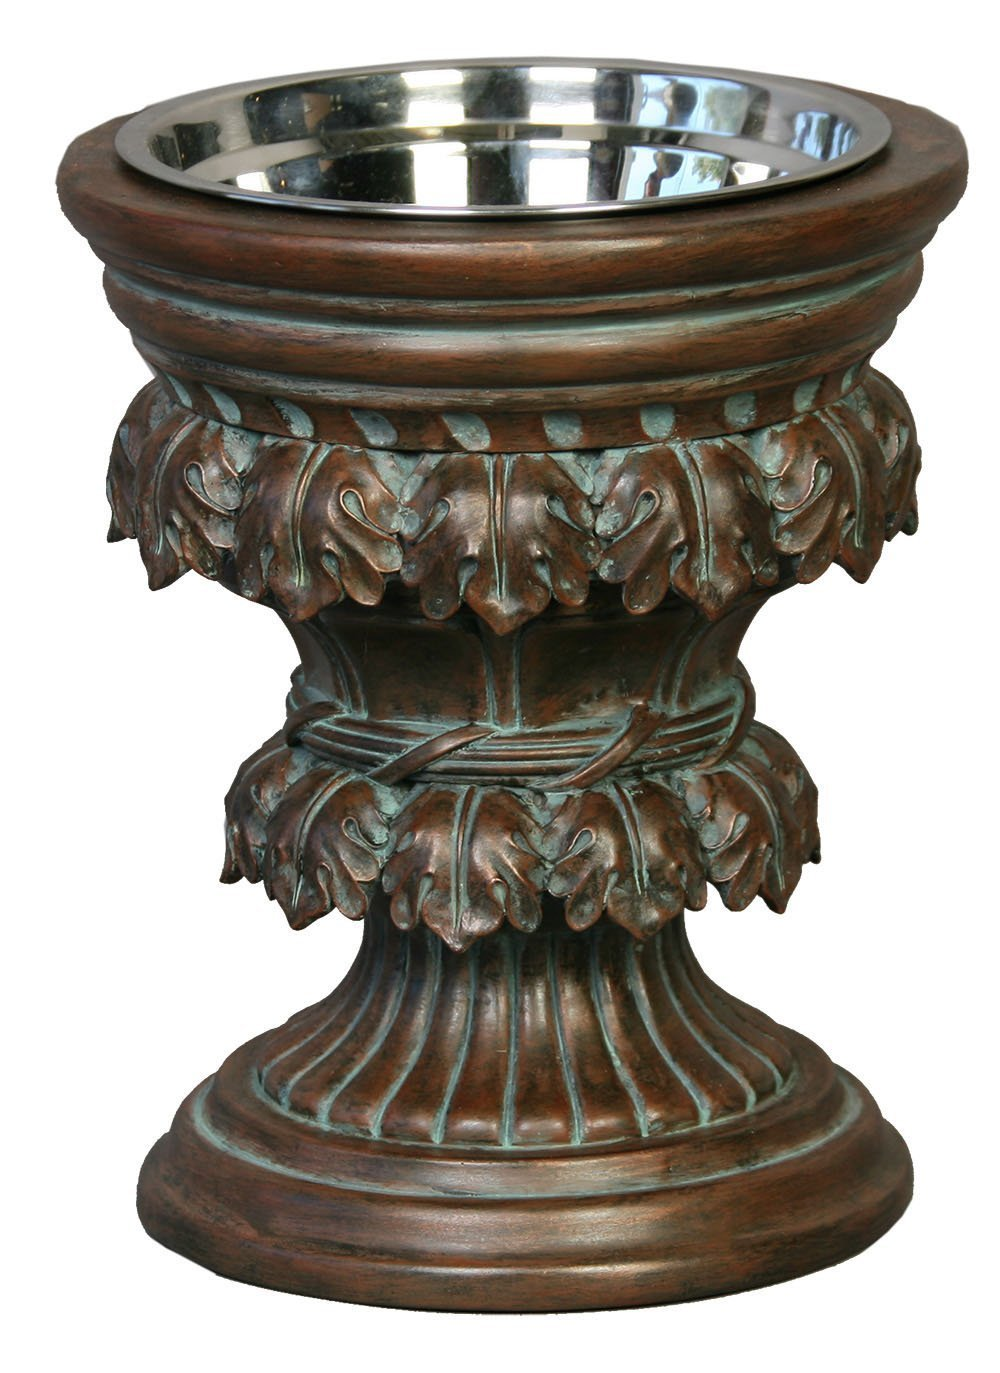 Unleashed Life Baroque Collection Old World Raised Feeder, Large by Unleashed Life (Image #1)